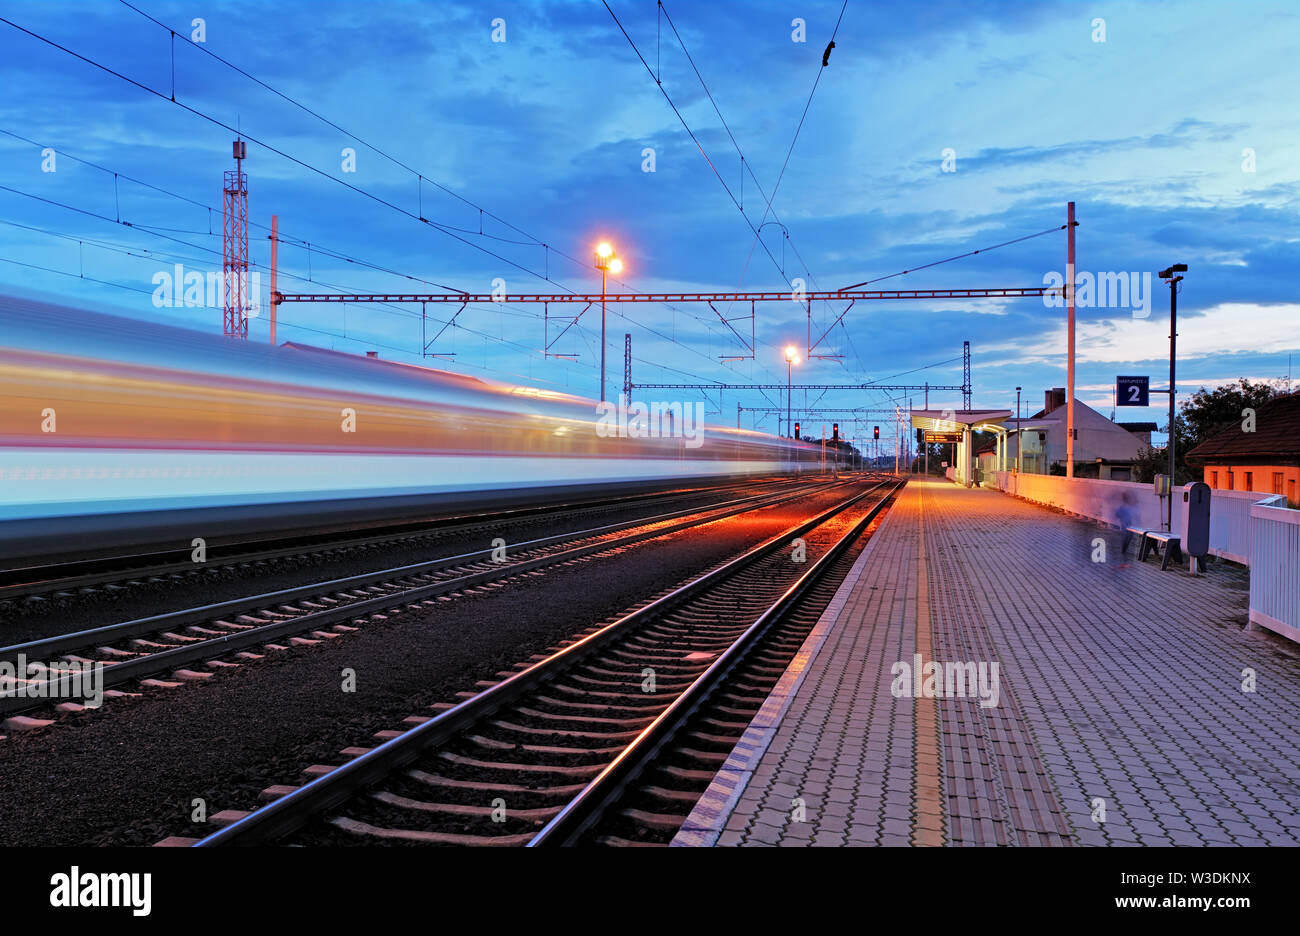 Train station in motion blur at night, railroad - Stock Image